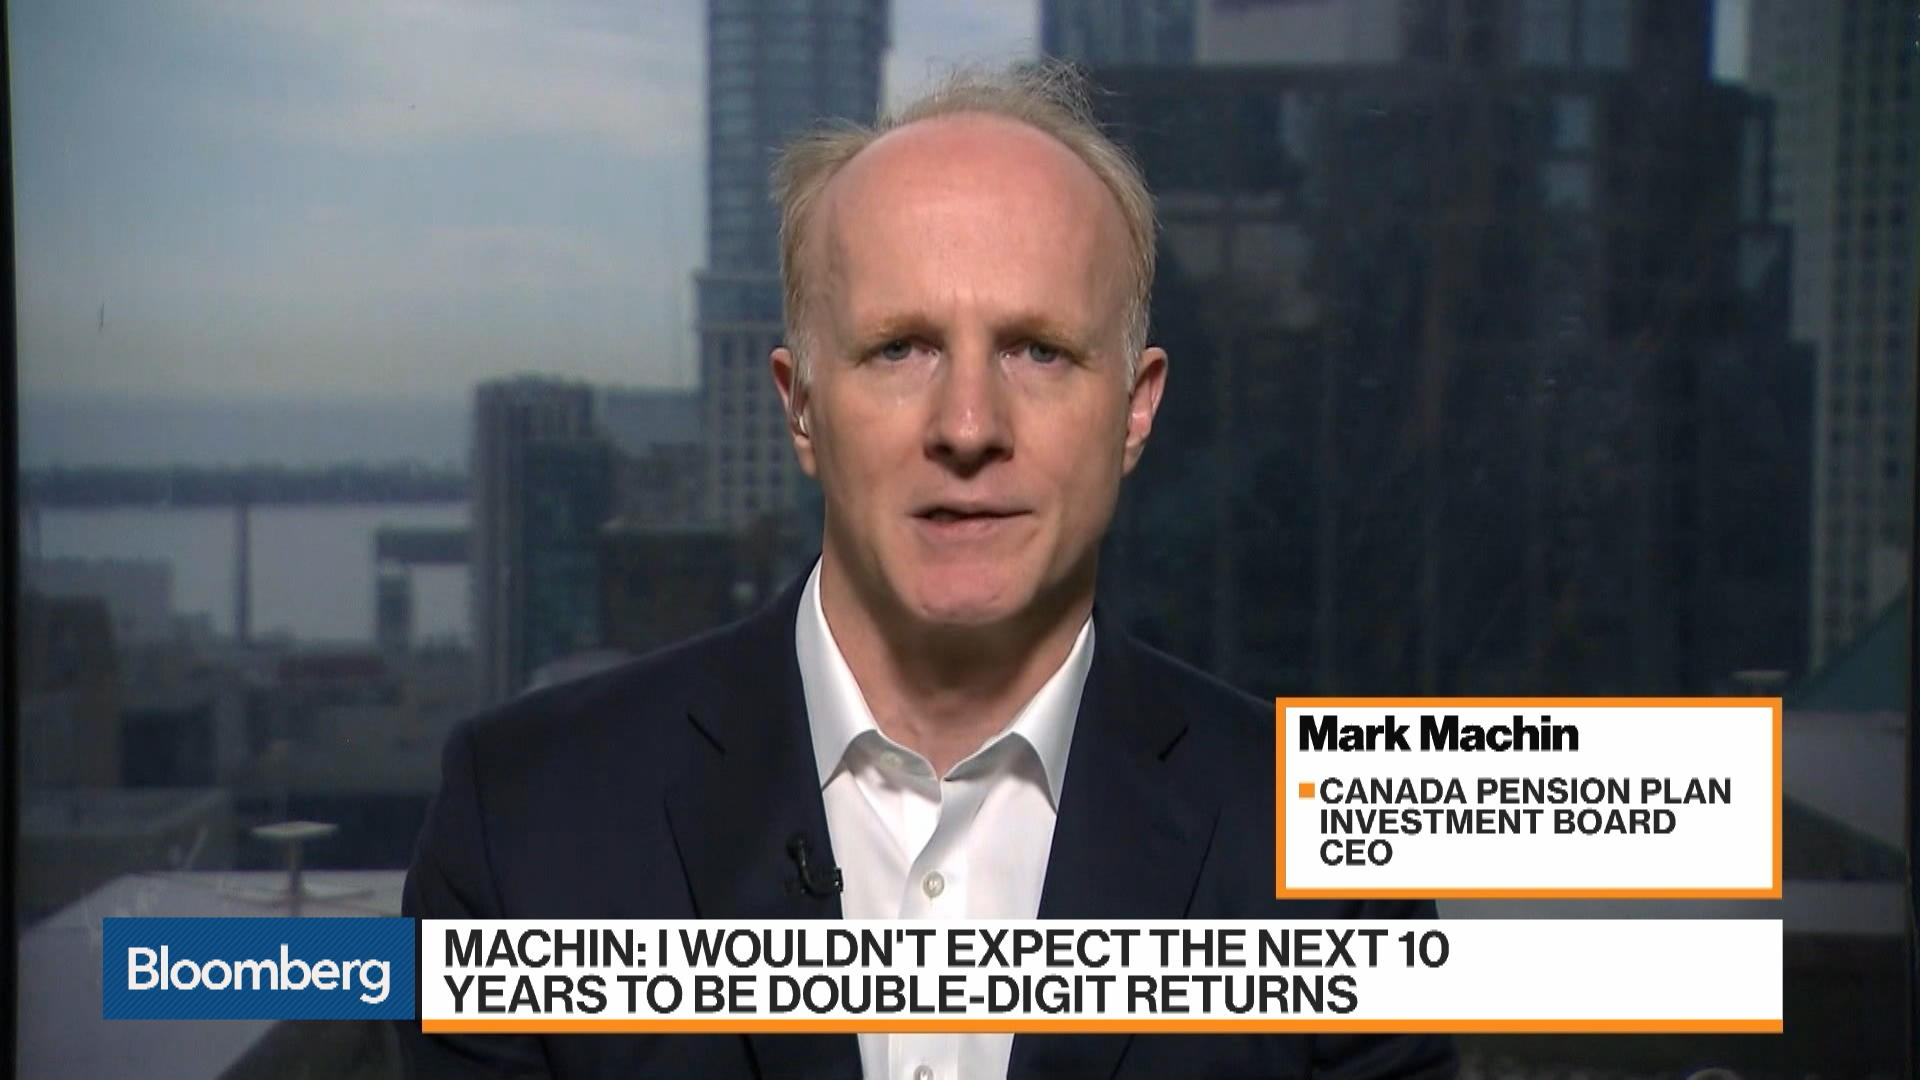 Canada Pension CEO Doesn't Expect Double-Digit Returns or Recession